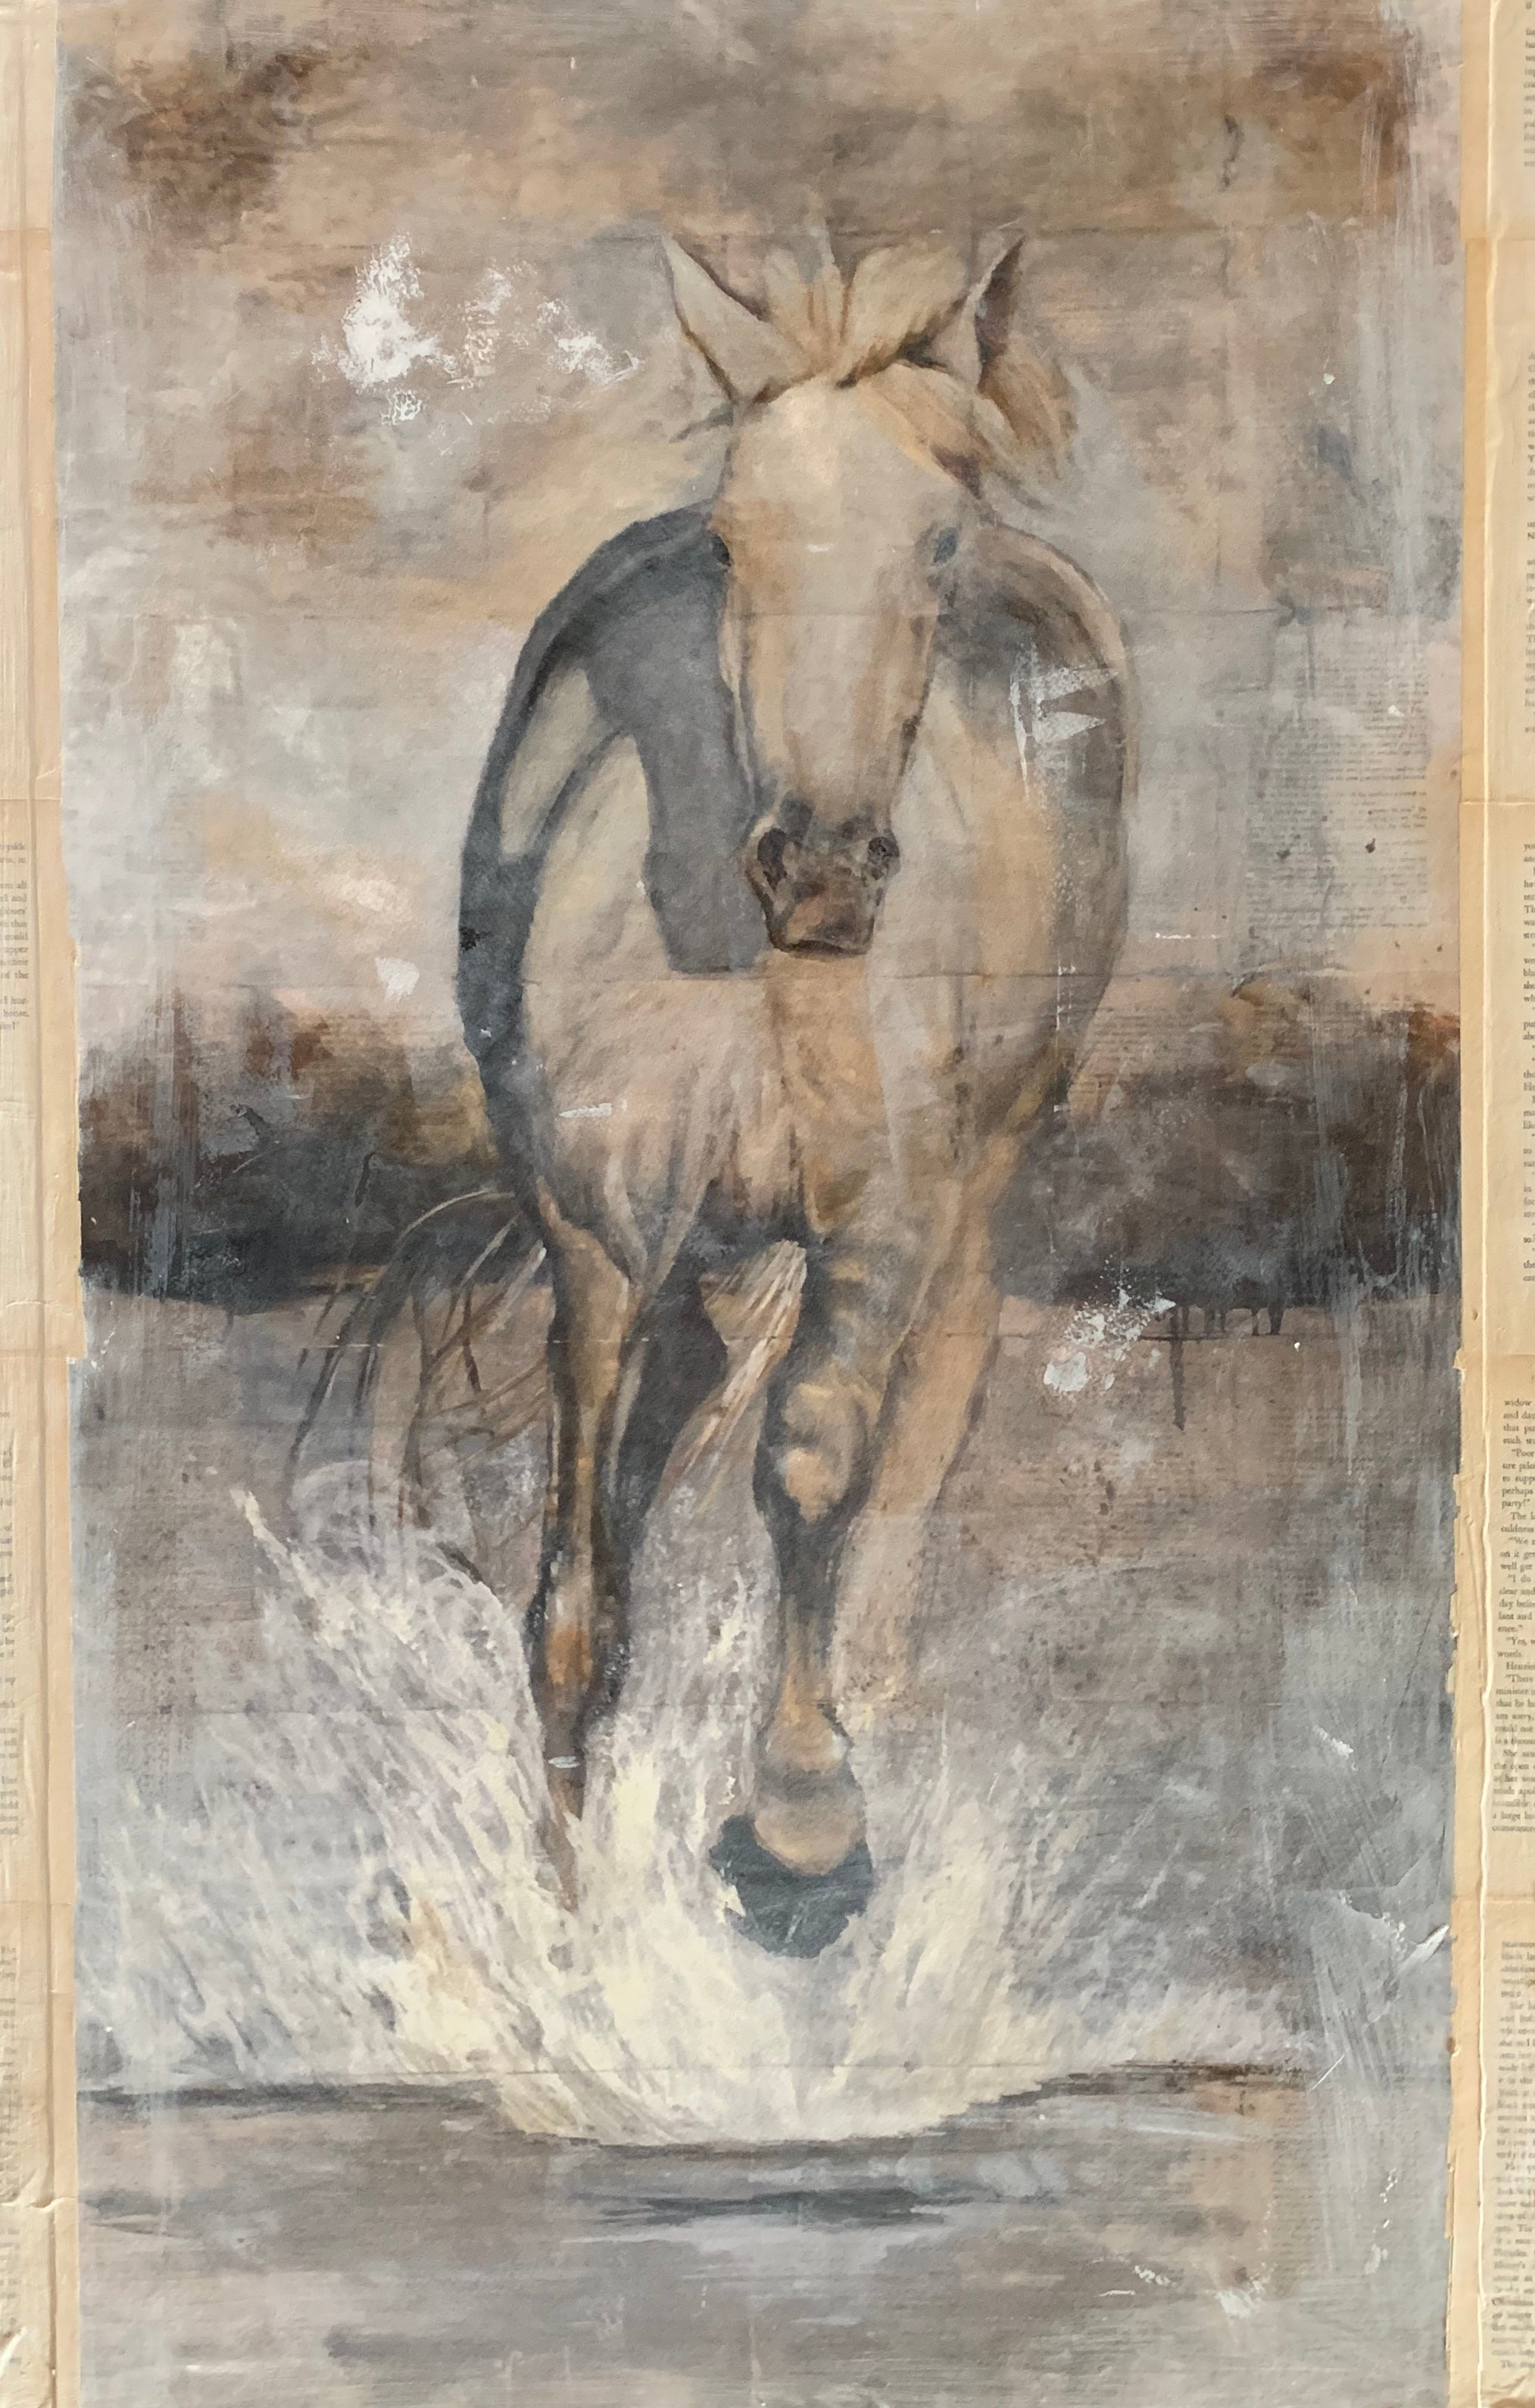 Original retouched print of energetic horse from the Camargue region of France in subtle neutrals of cool and warm tones of gray. A showpiece for any wall in your home or office.